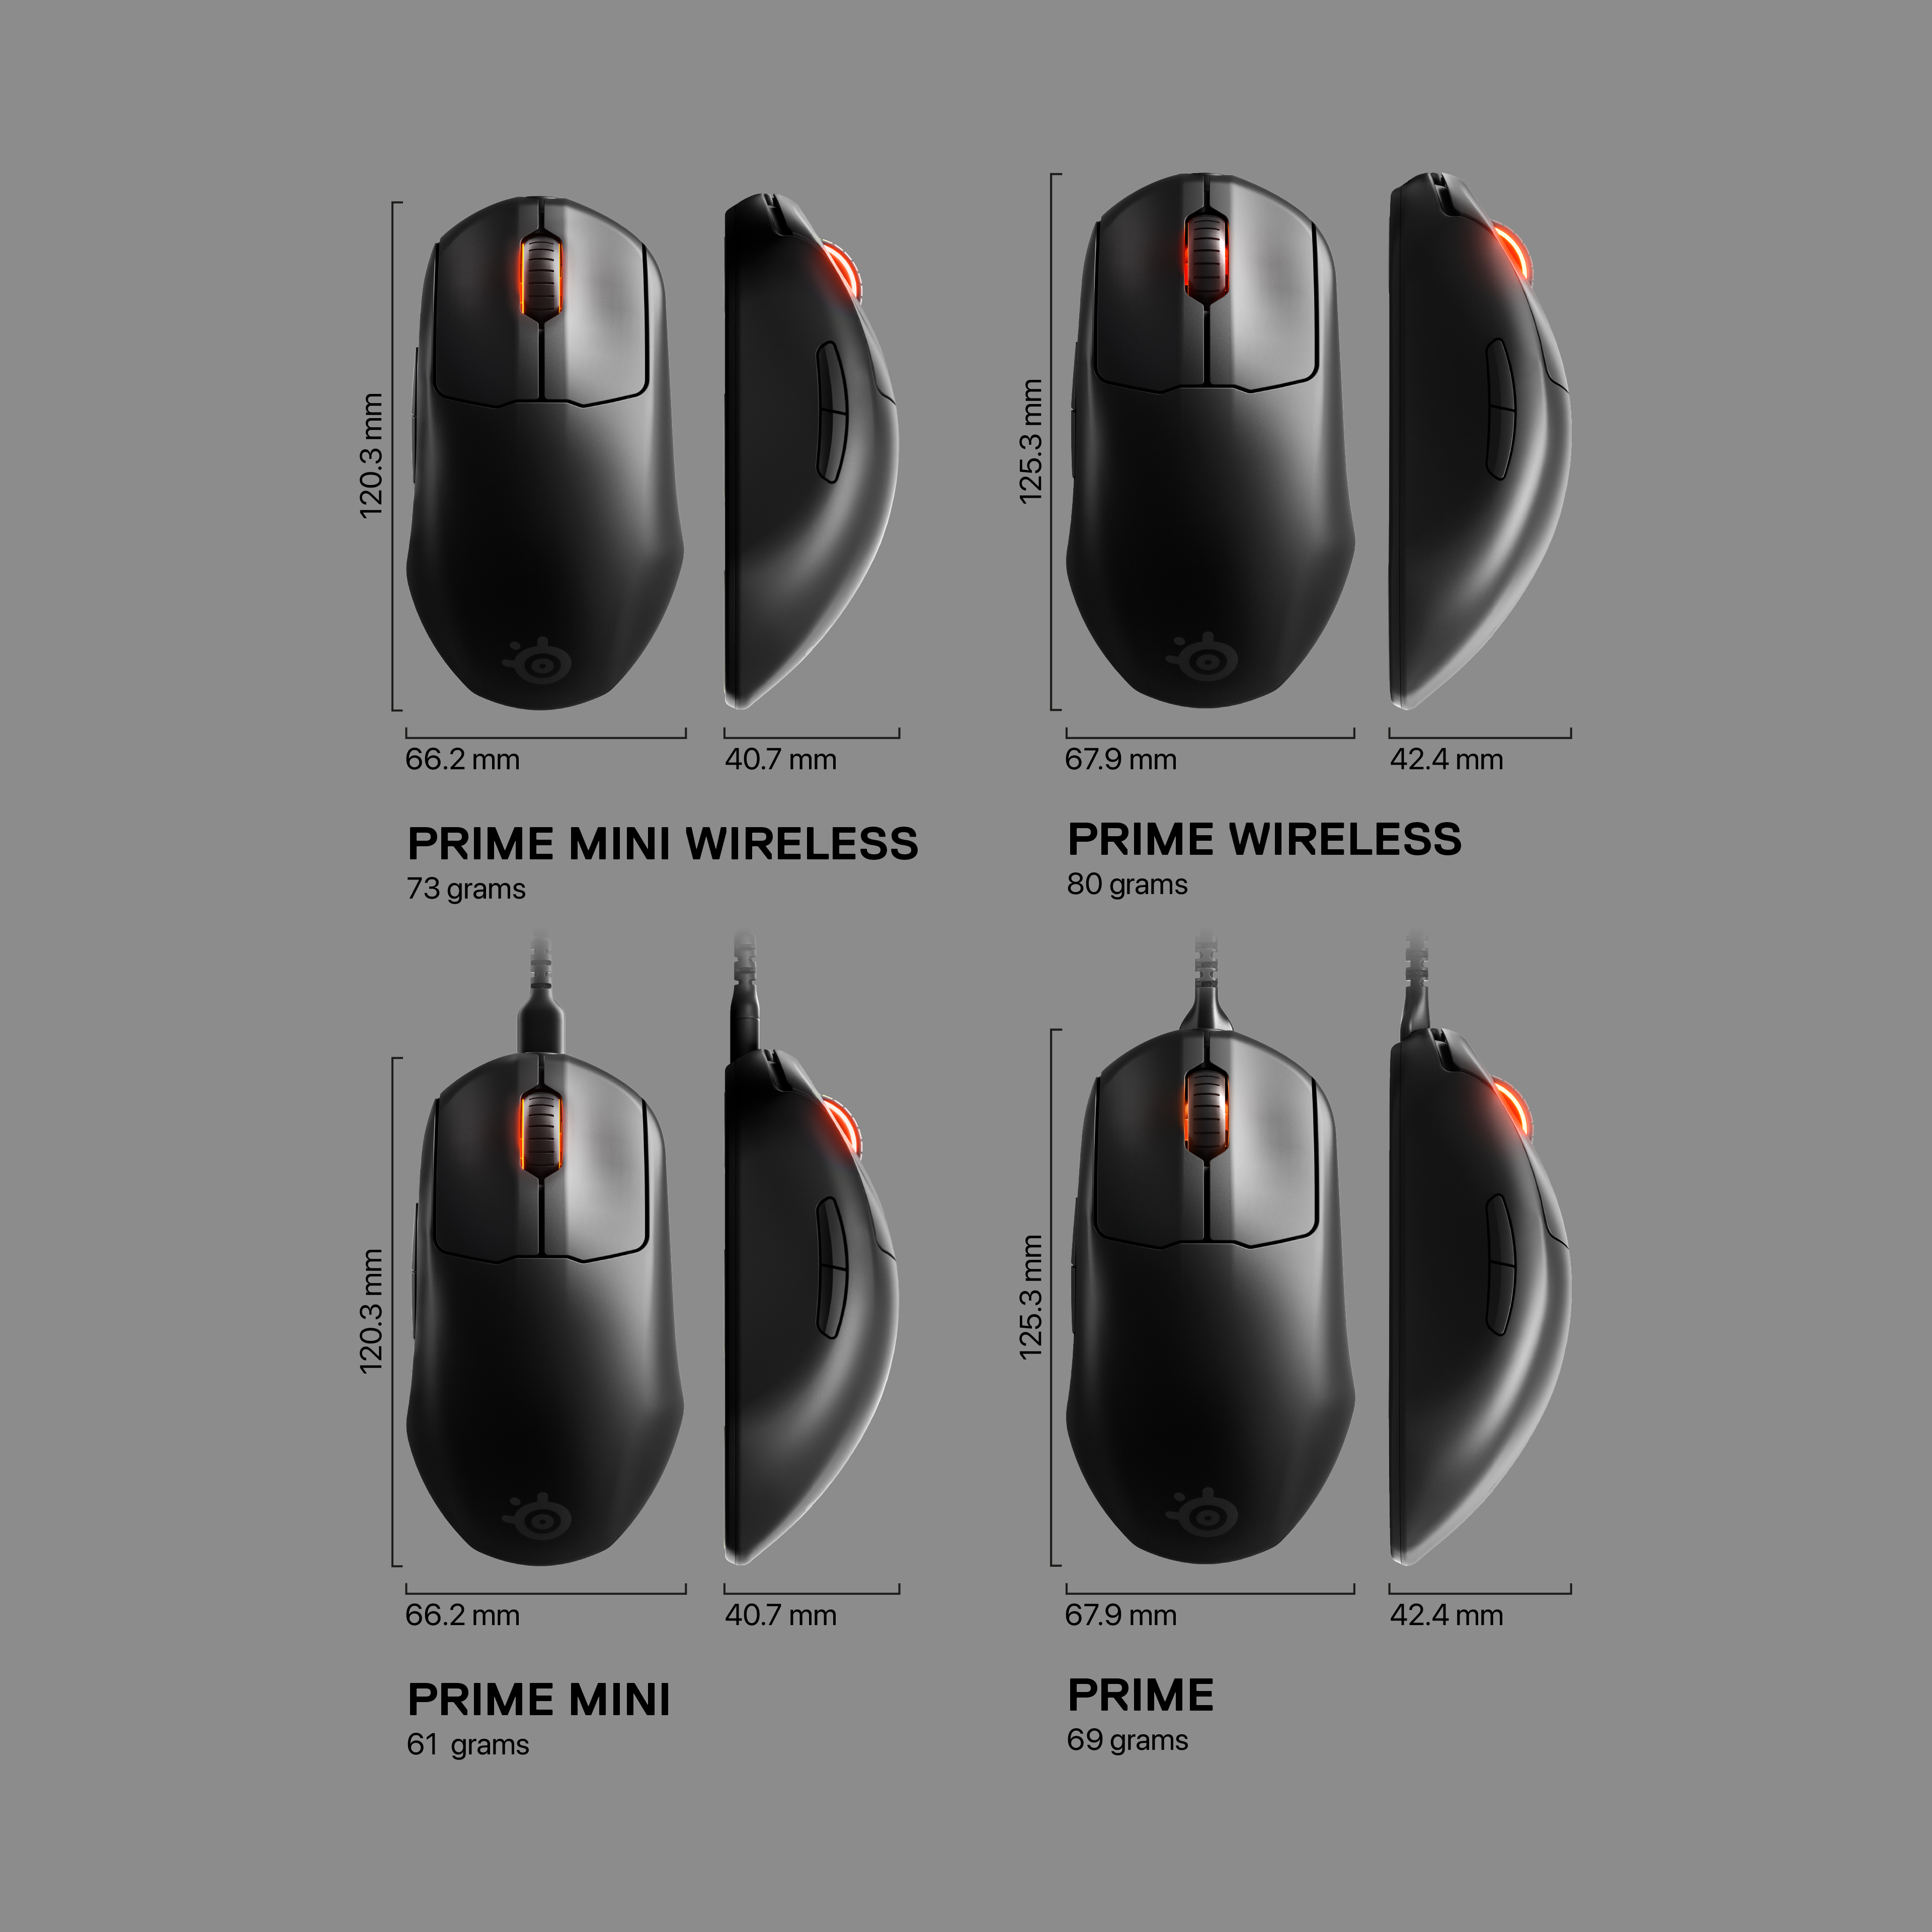 Prime mice sizes and shapes